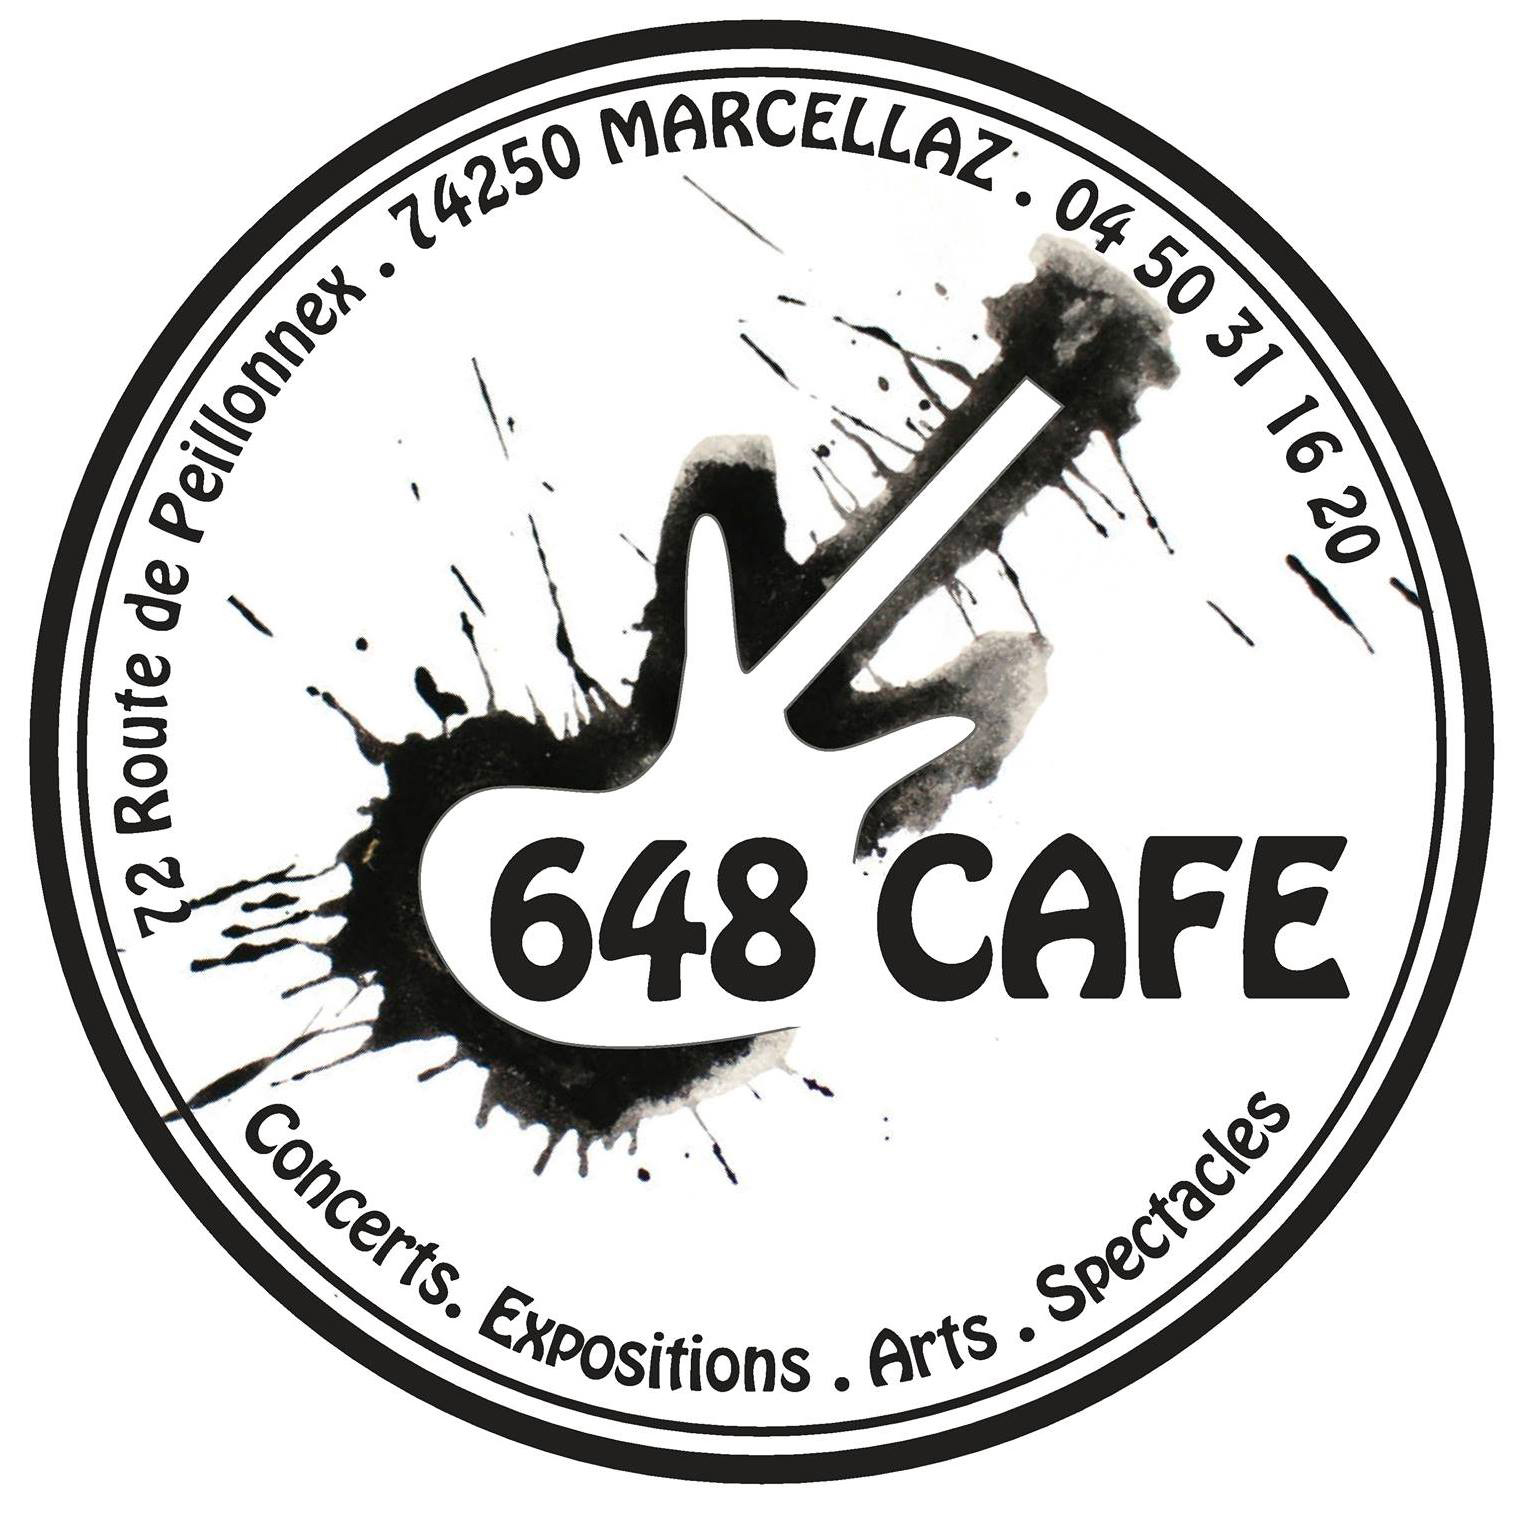 648-cafe-marcellaz.jpg